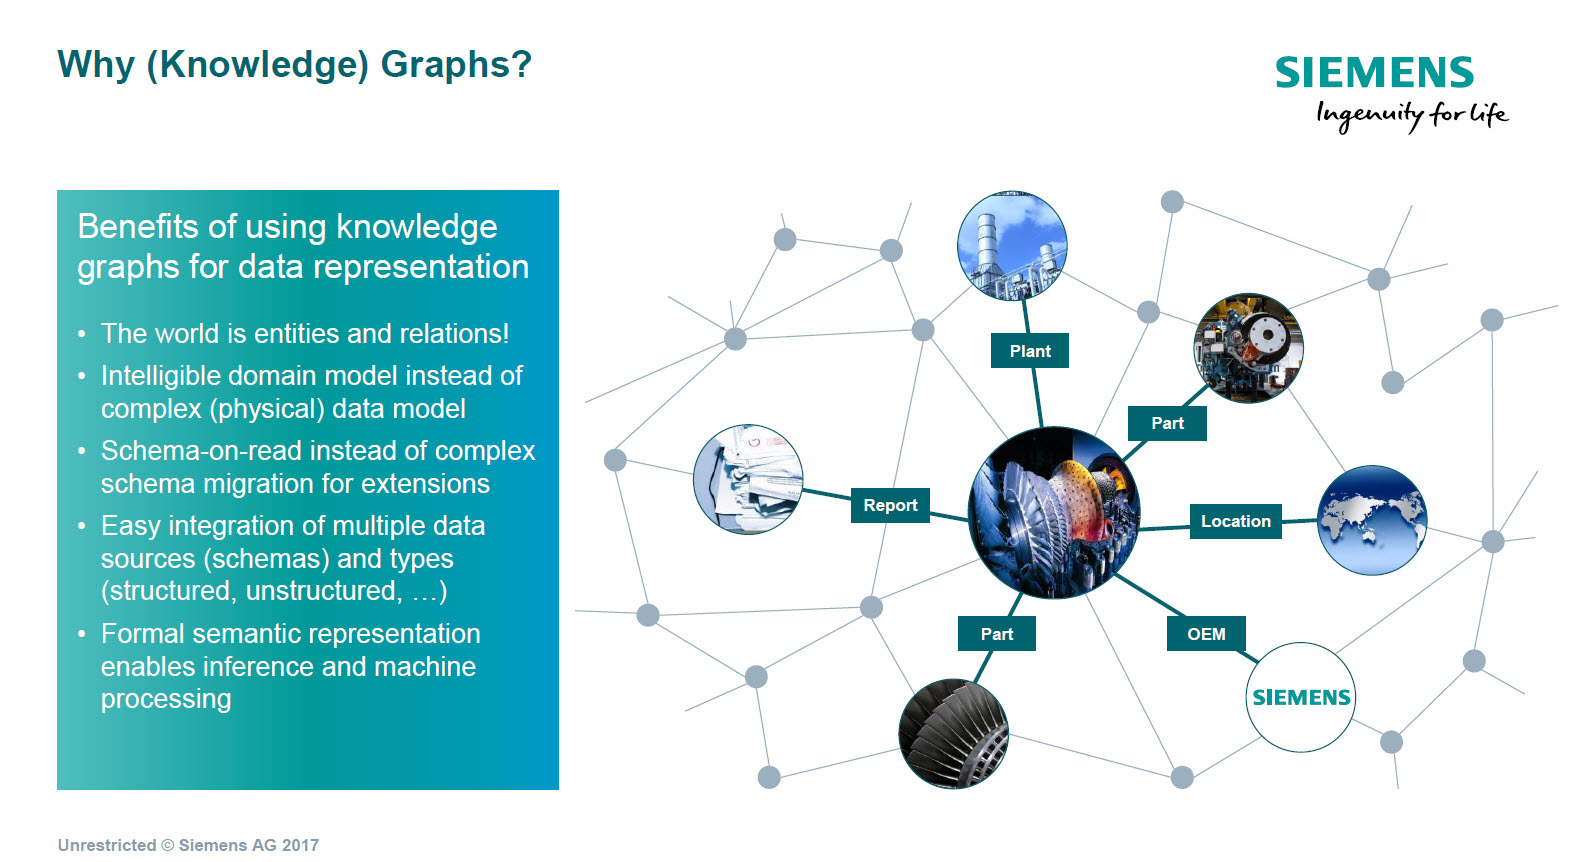 Build Better Graph Or Diagram And World >> The Arrival And Potential Of Knowledge Graphs Into Our World